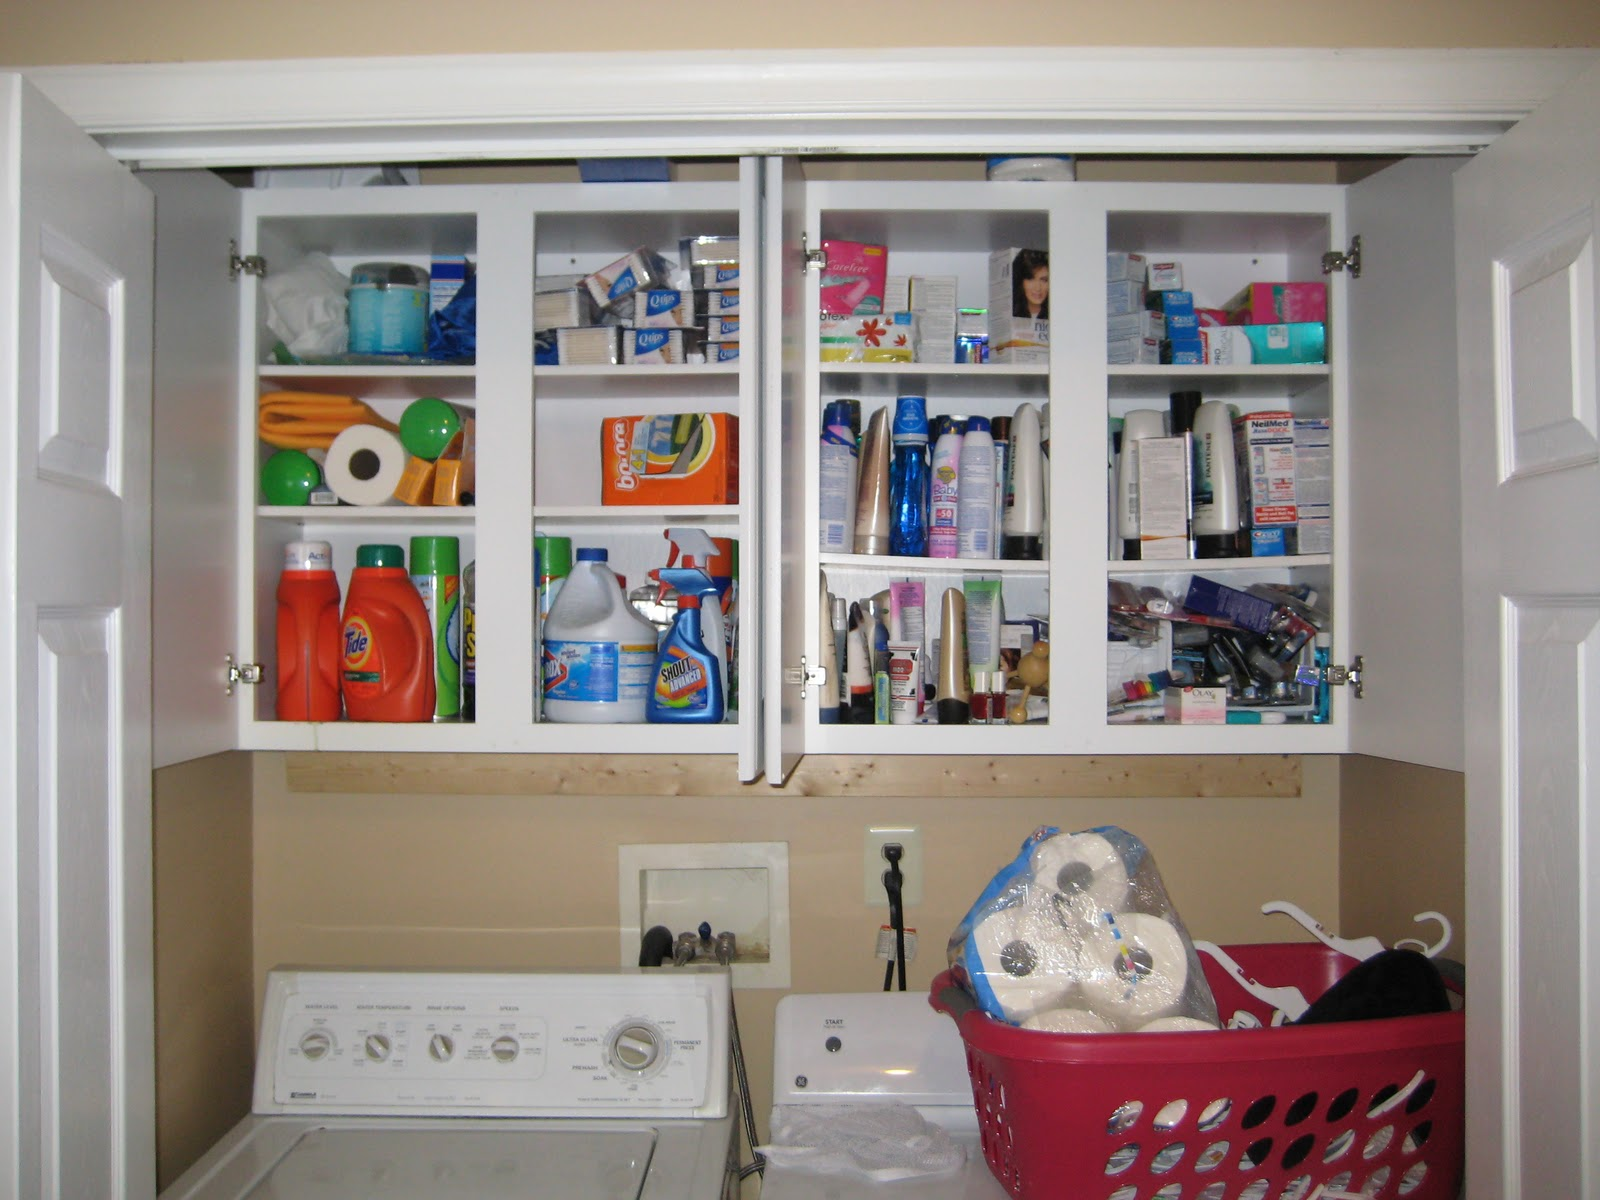 laundry room closet organization | Making Our House A Home: Day #10 - Laundry Room/Closet ...